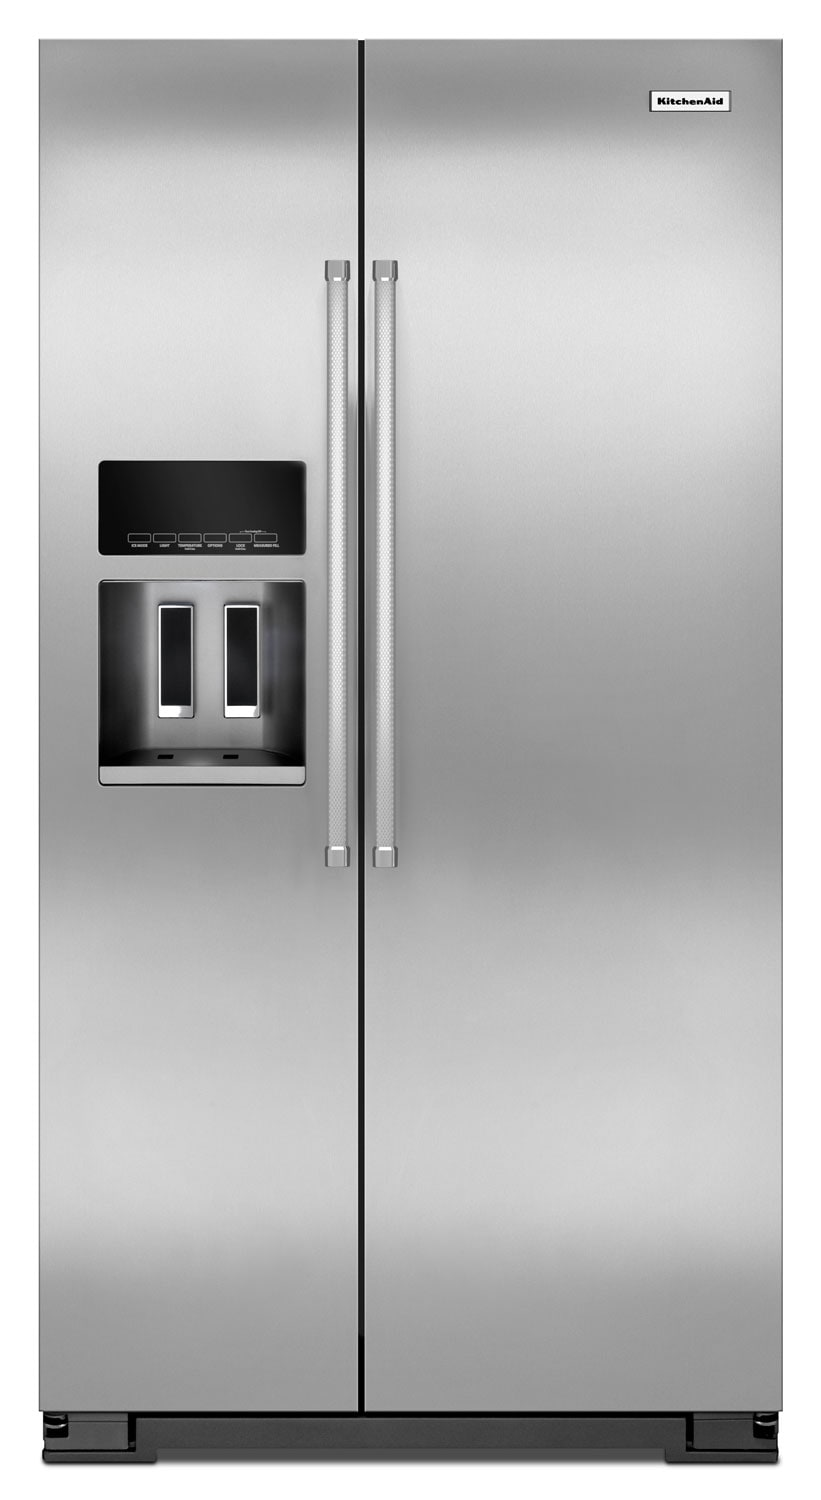 KitchenAid Stainless Steel Side-by-Side Refrigerator (24.8 Cu. Ft.) - KRSF505ESS